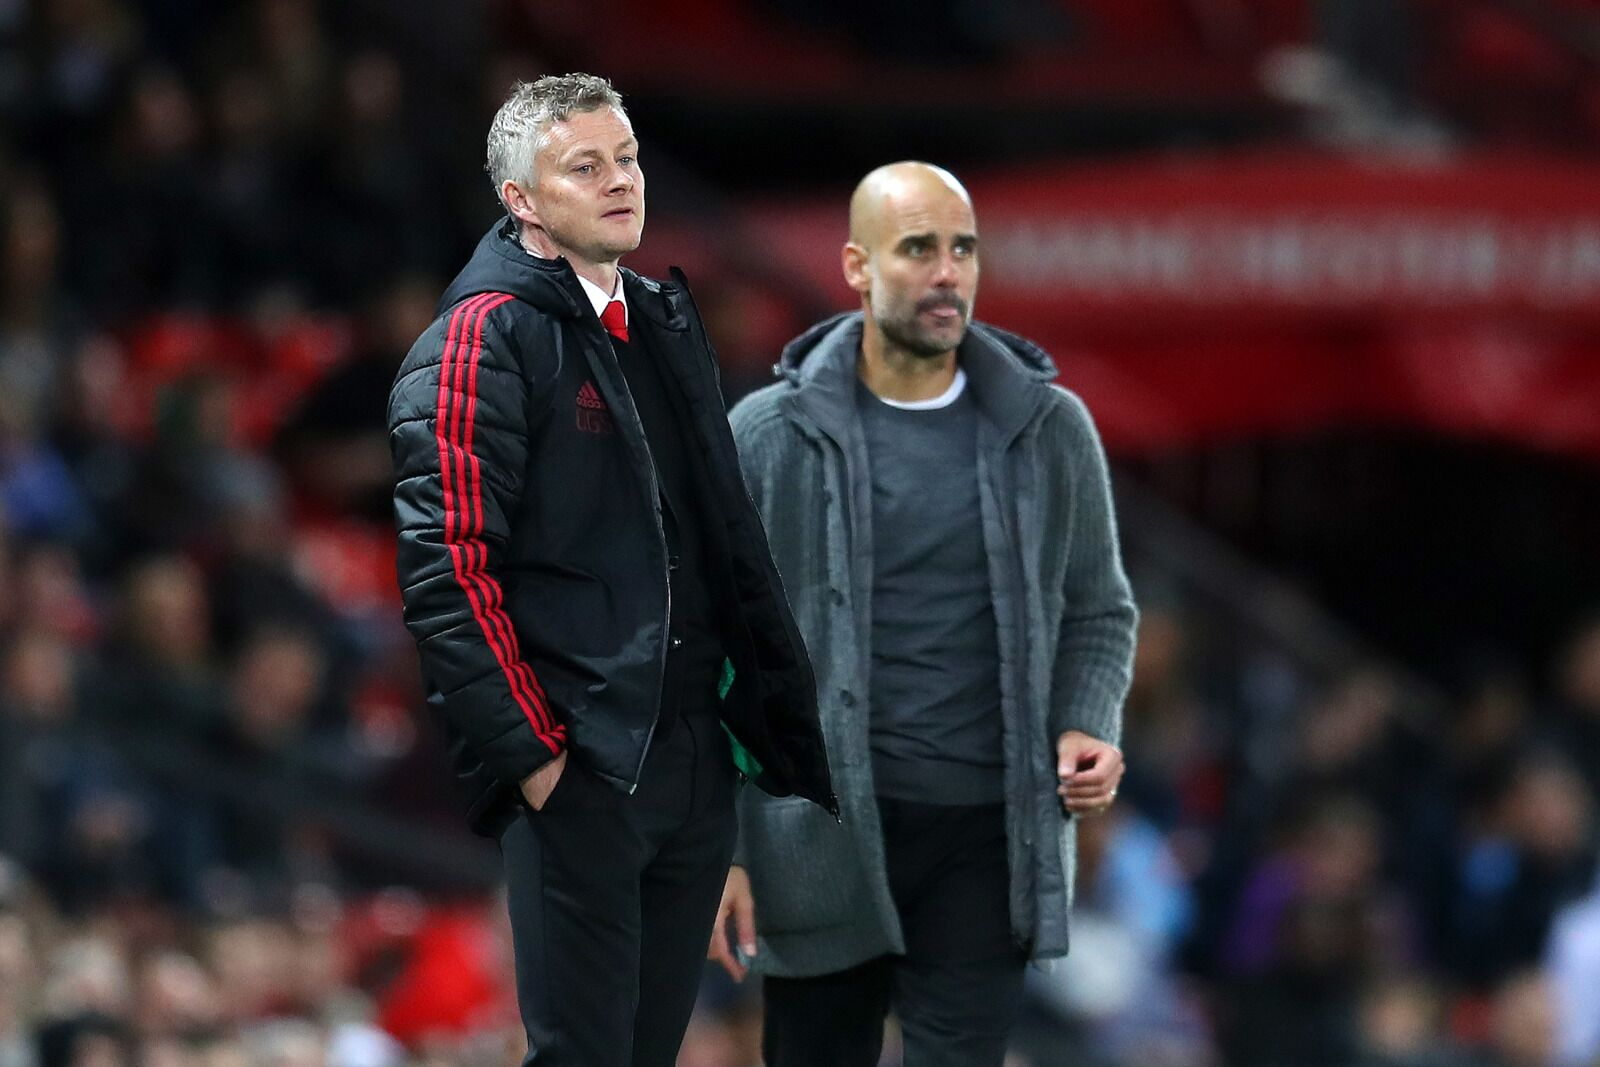 Manchester City's spending ruining football? No, Manchester United's is